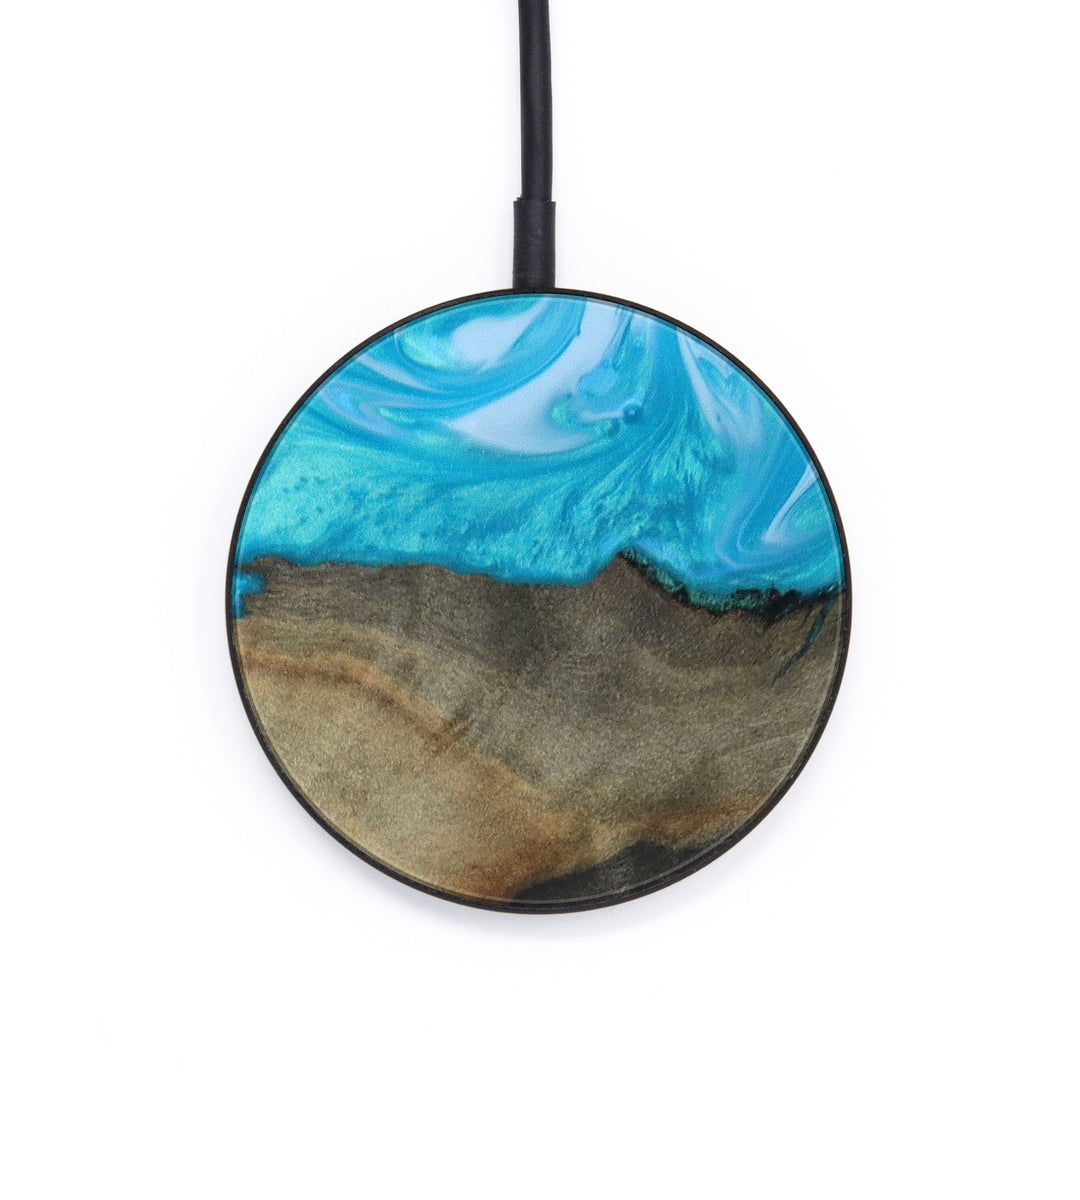 Circle Wood+Resin Wireless Charger - Aeriell (Light Blue, 402622)